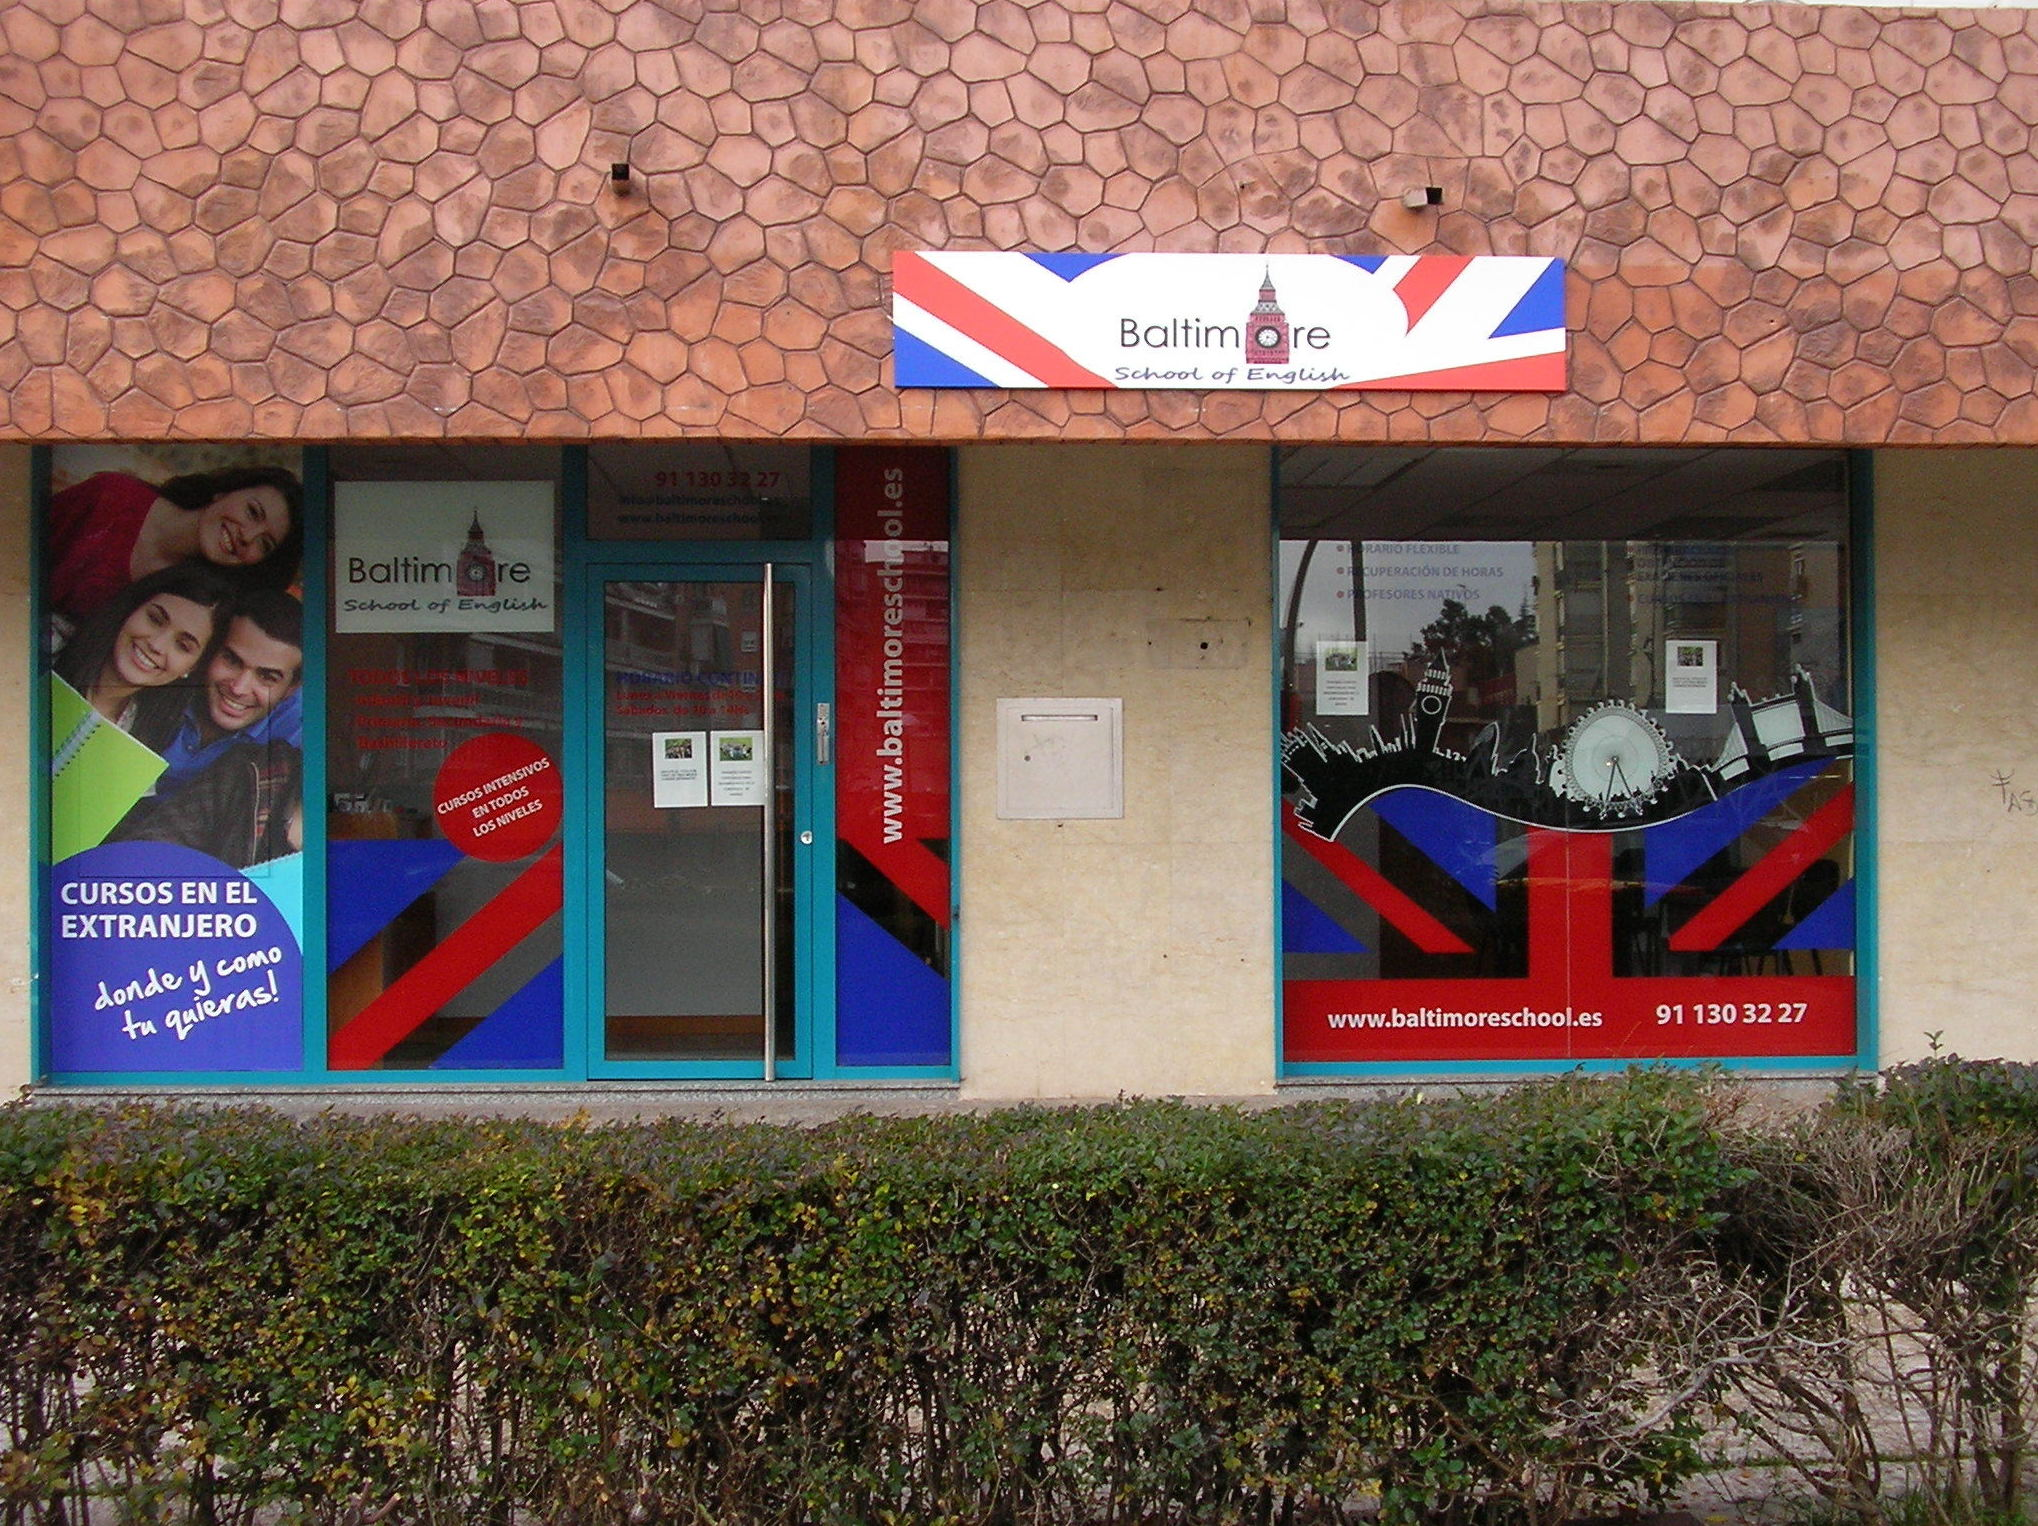 Baltimore School of English en Av. de Padre Piquer, 14 (Madrid)